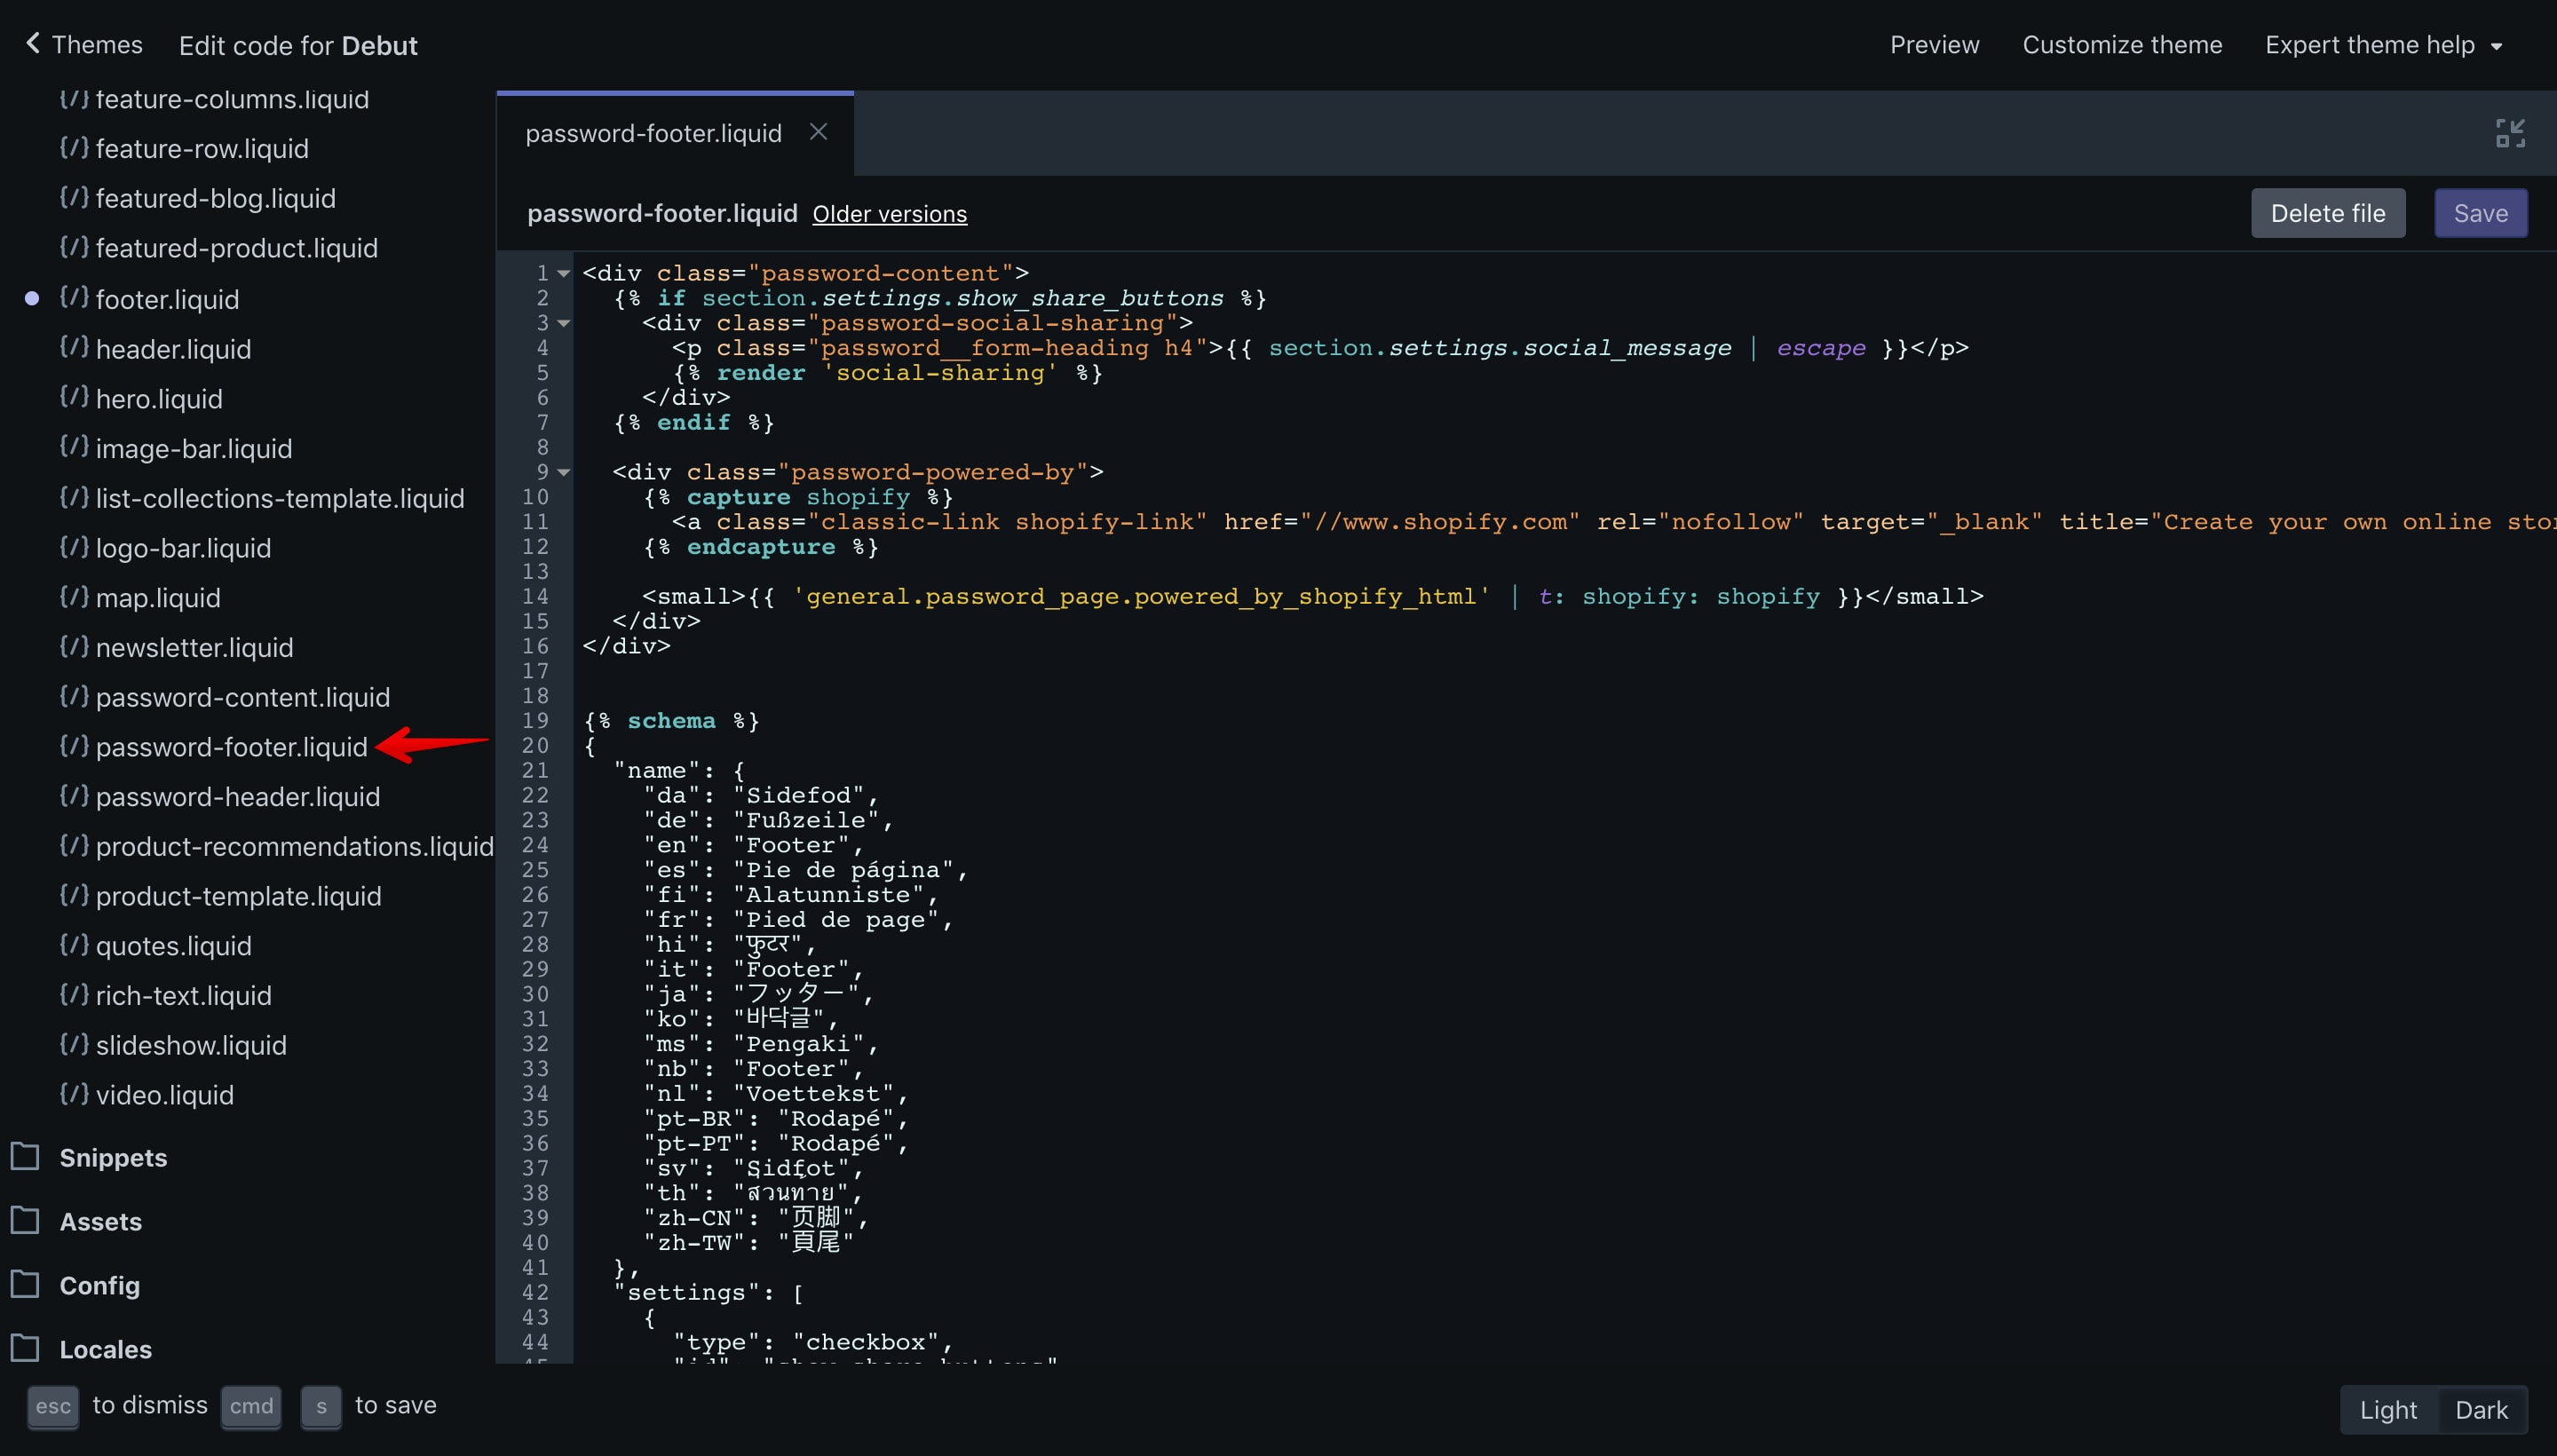 """Debut theme """"password-footer.liquid"""" file opened in the code editor"""